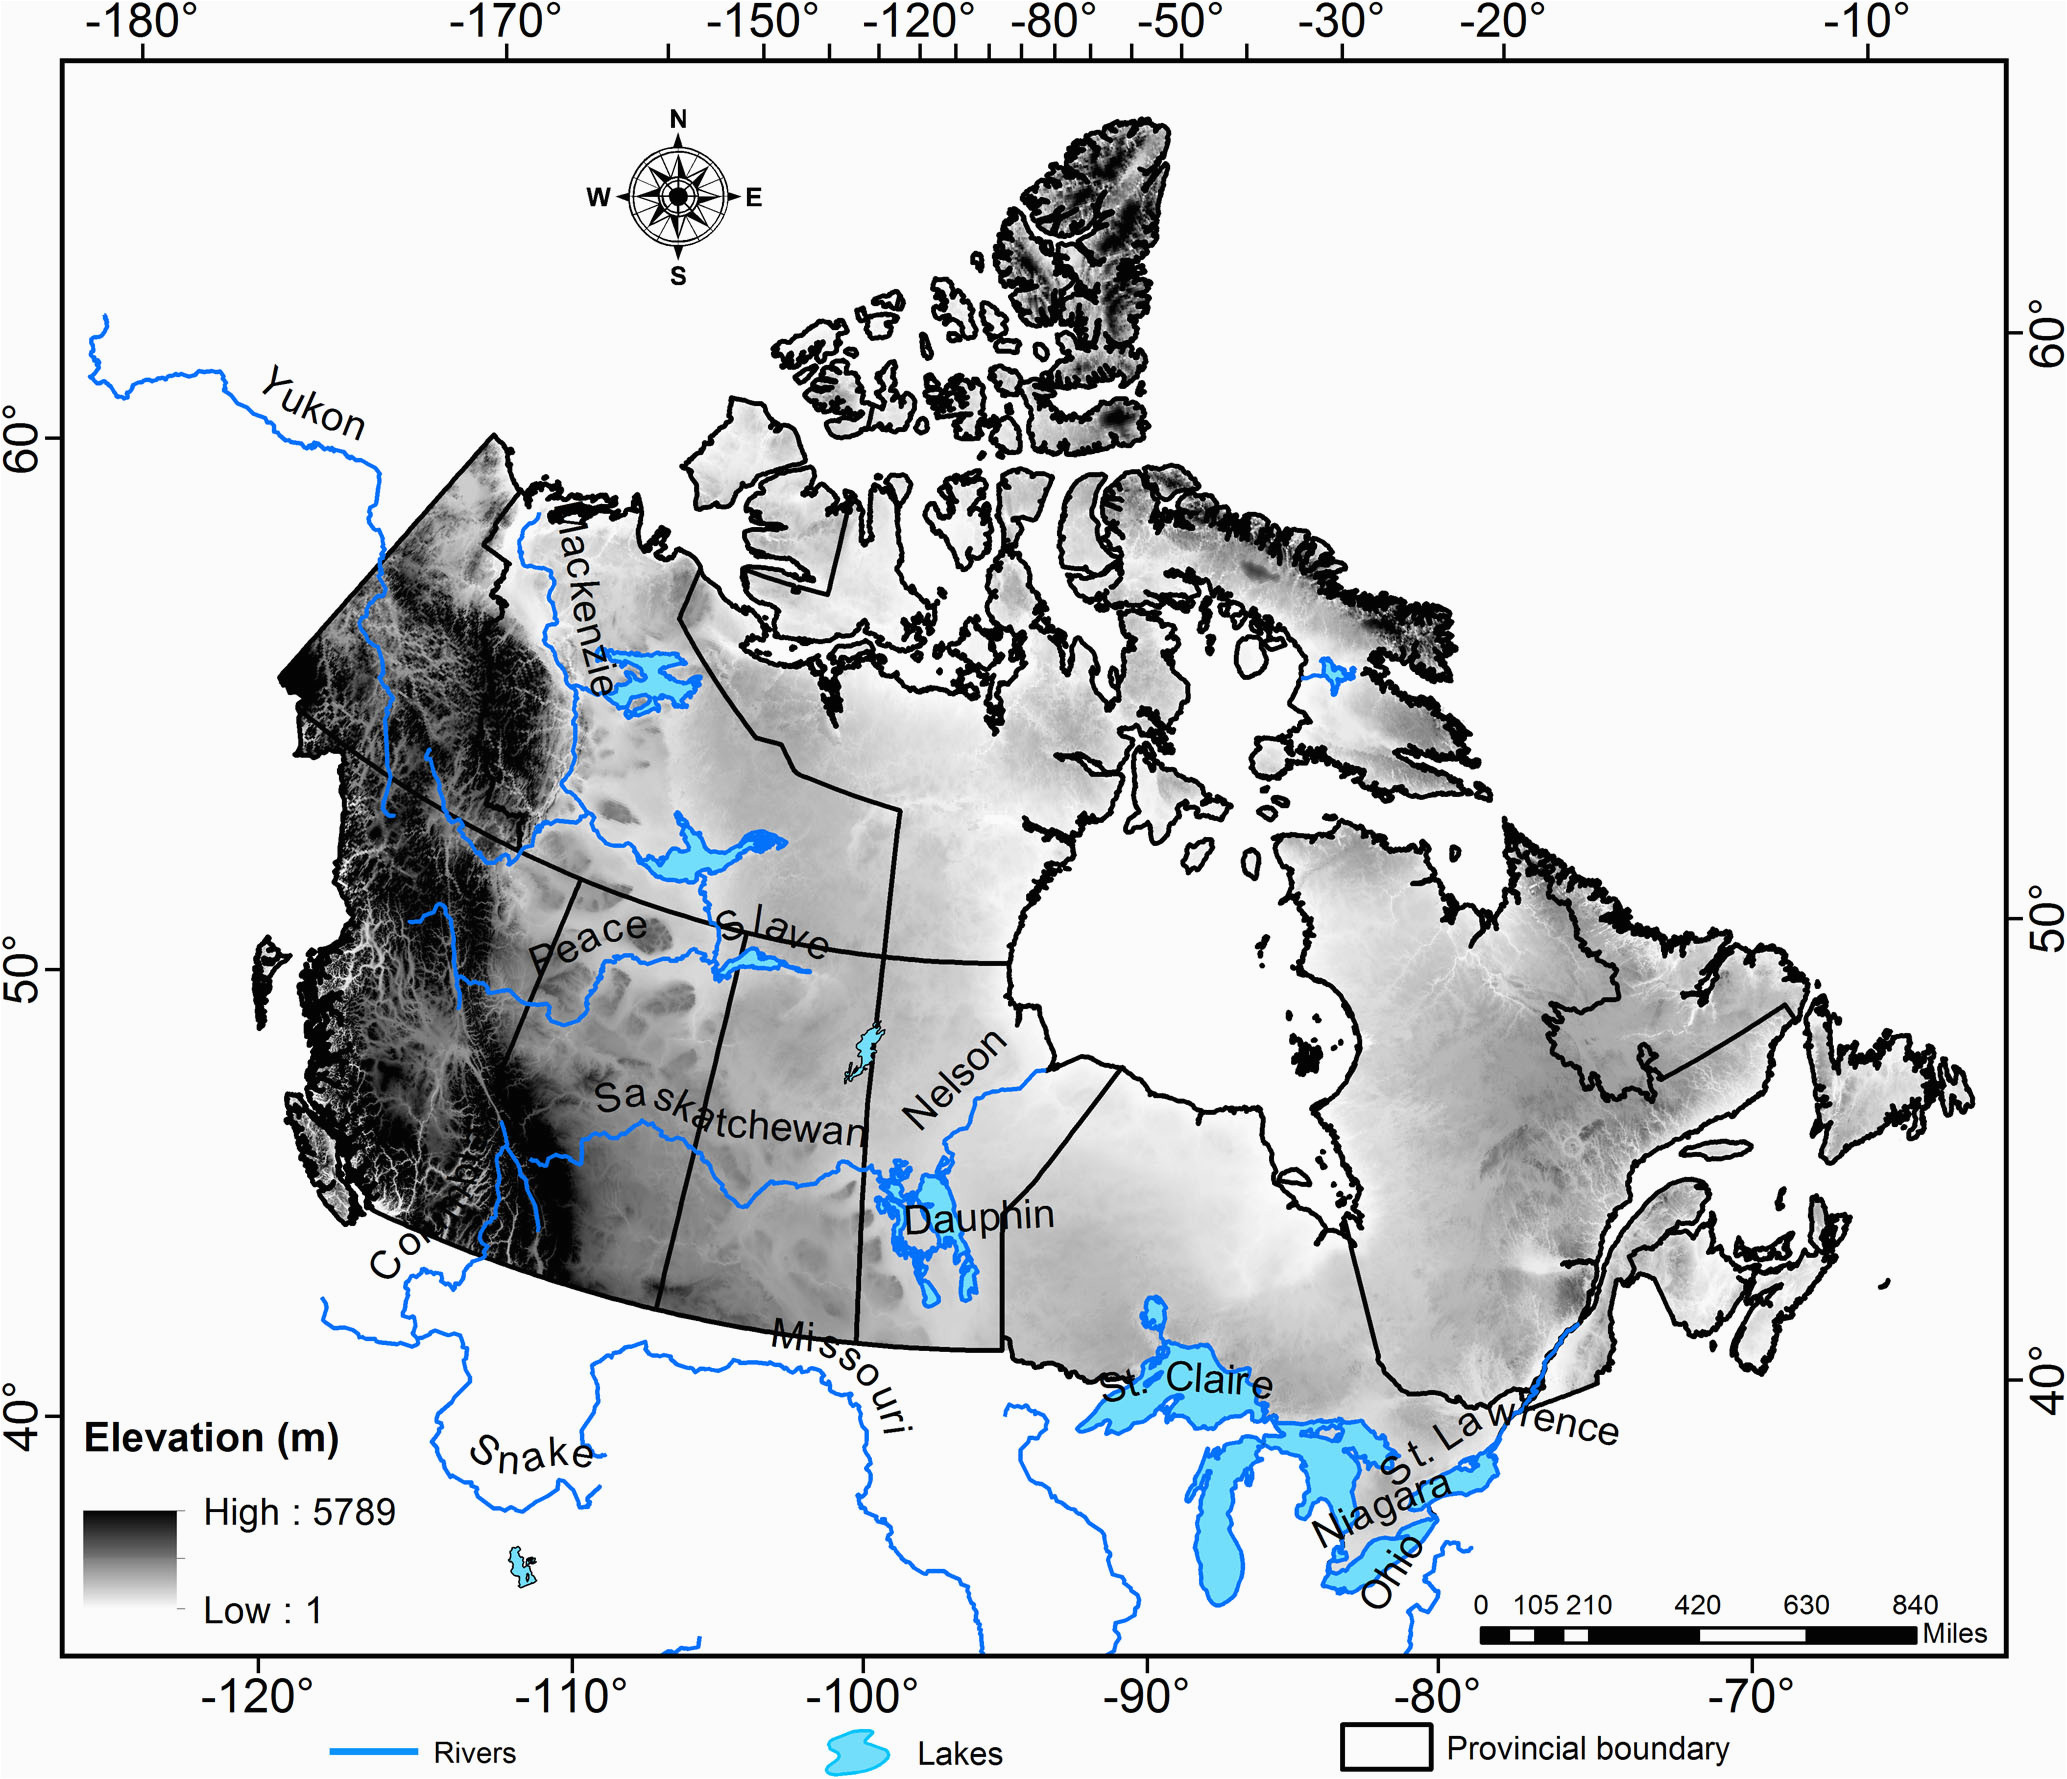 hess historical drought patterns over canada and their